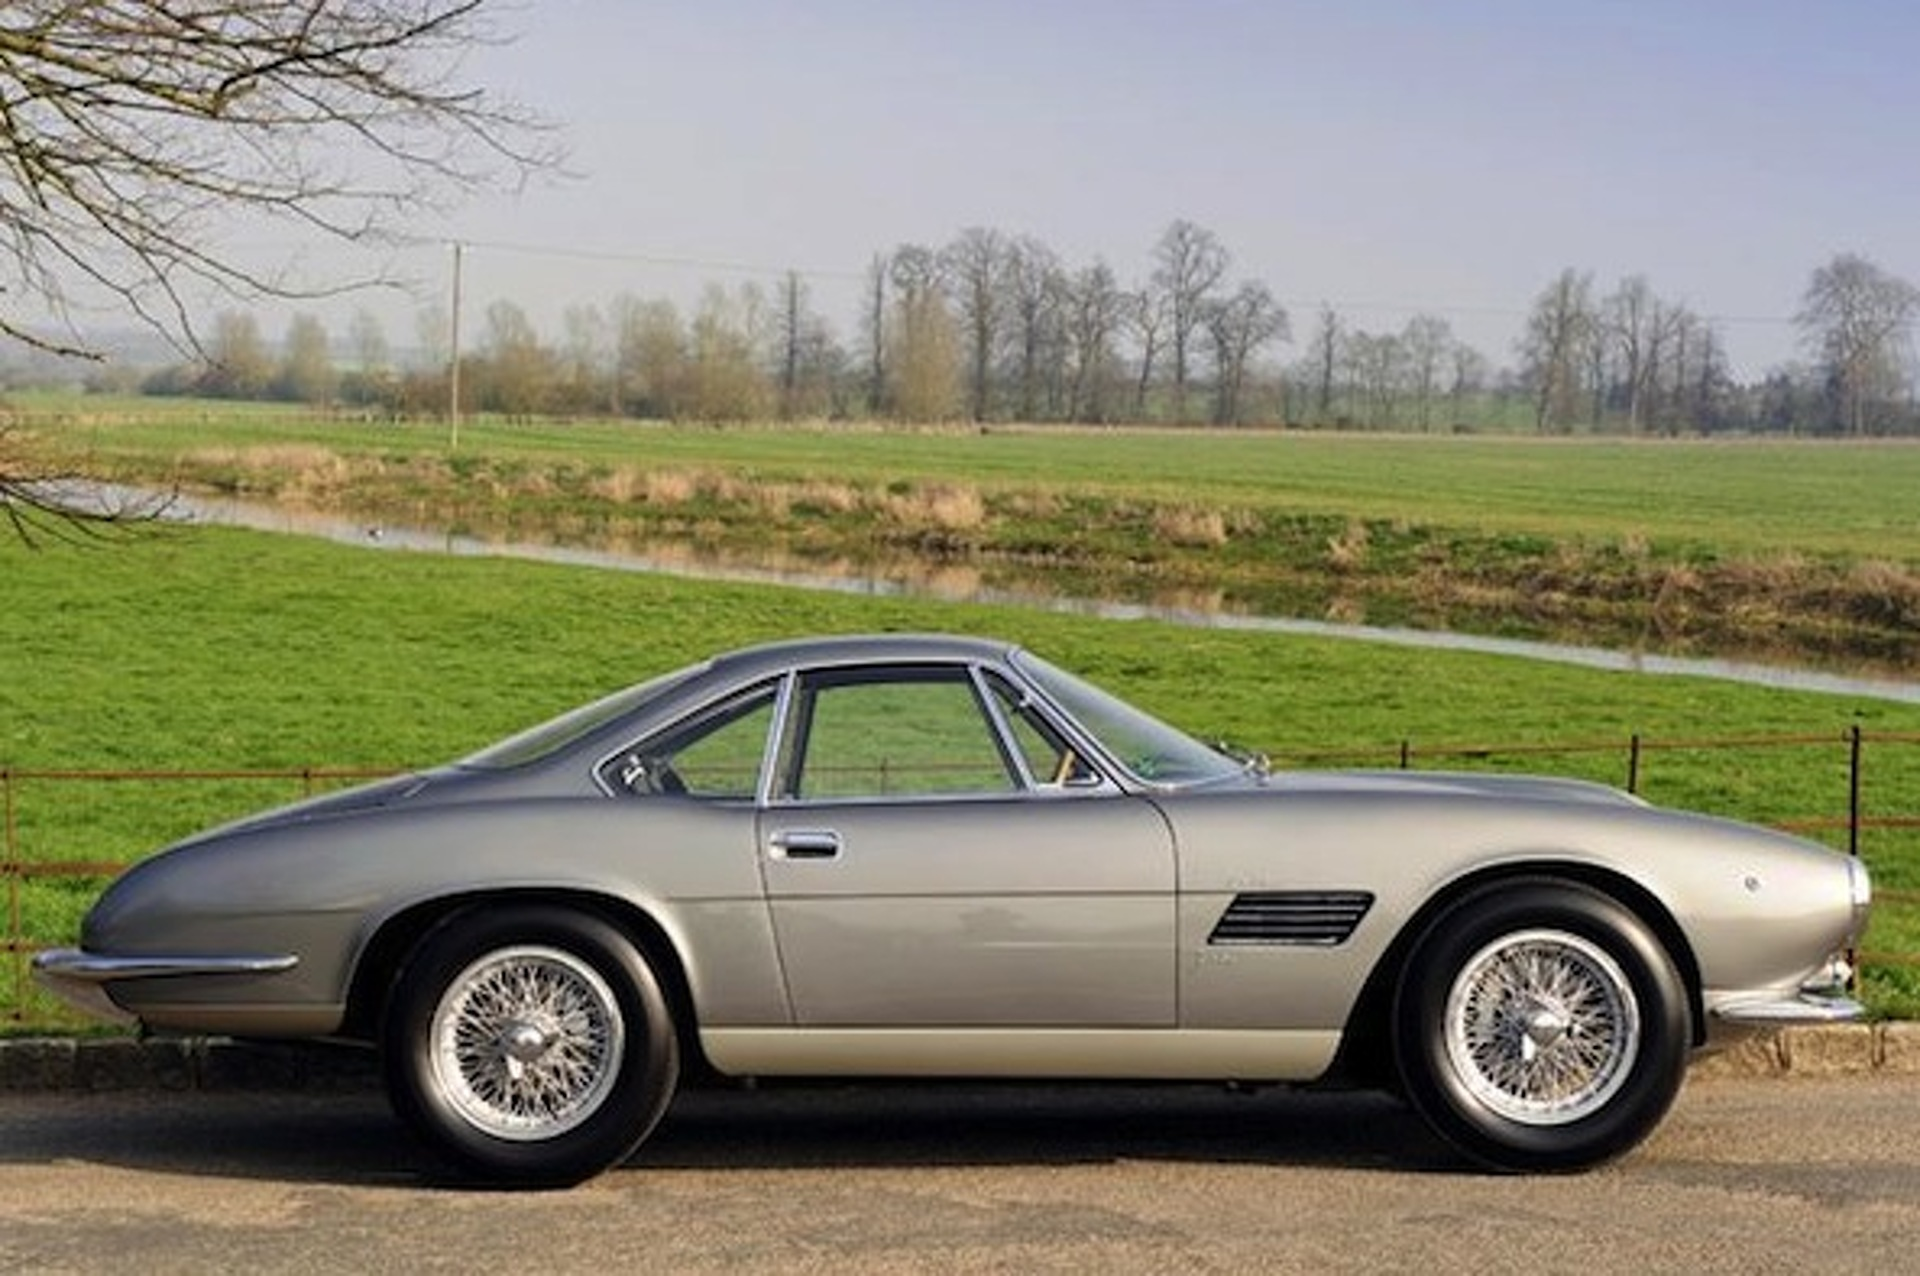 Aston Martin DB4GT Auctioned off for Record $4.9M